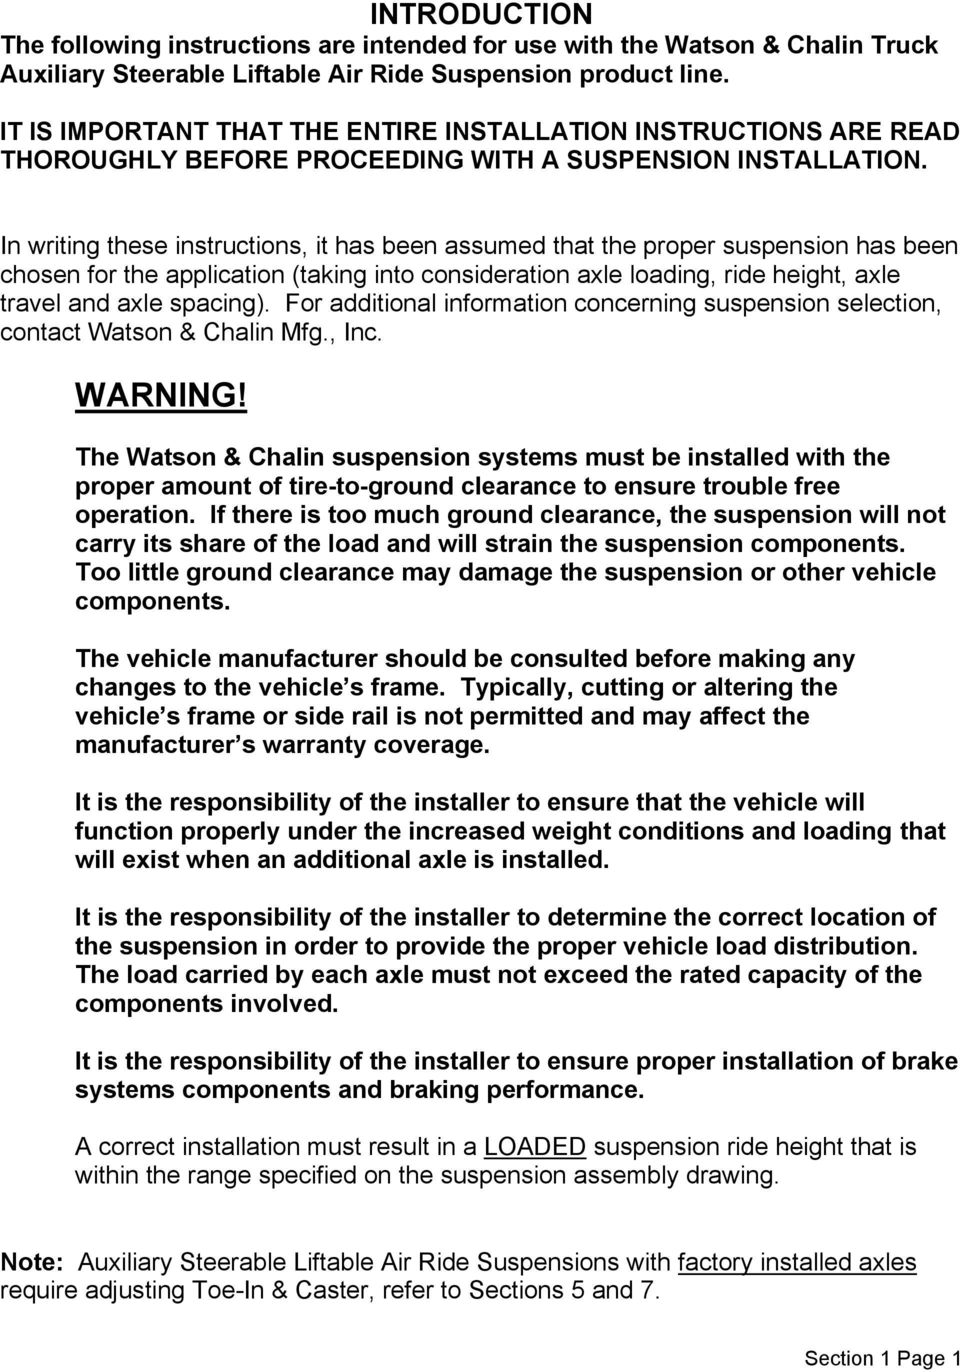 In writing these instructions, it has been assumed that the proper suspension has been chosen for the application (taking into consideration axle loading, ride height, axle travel and axle spacing).